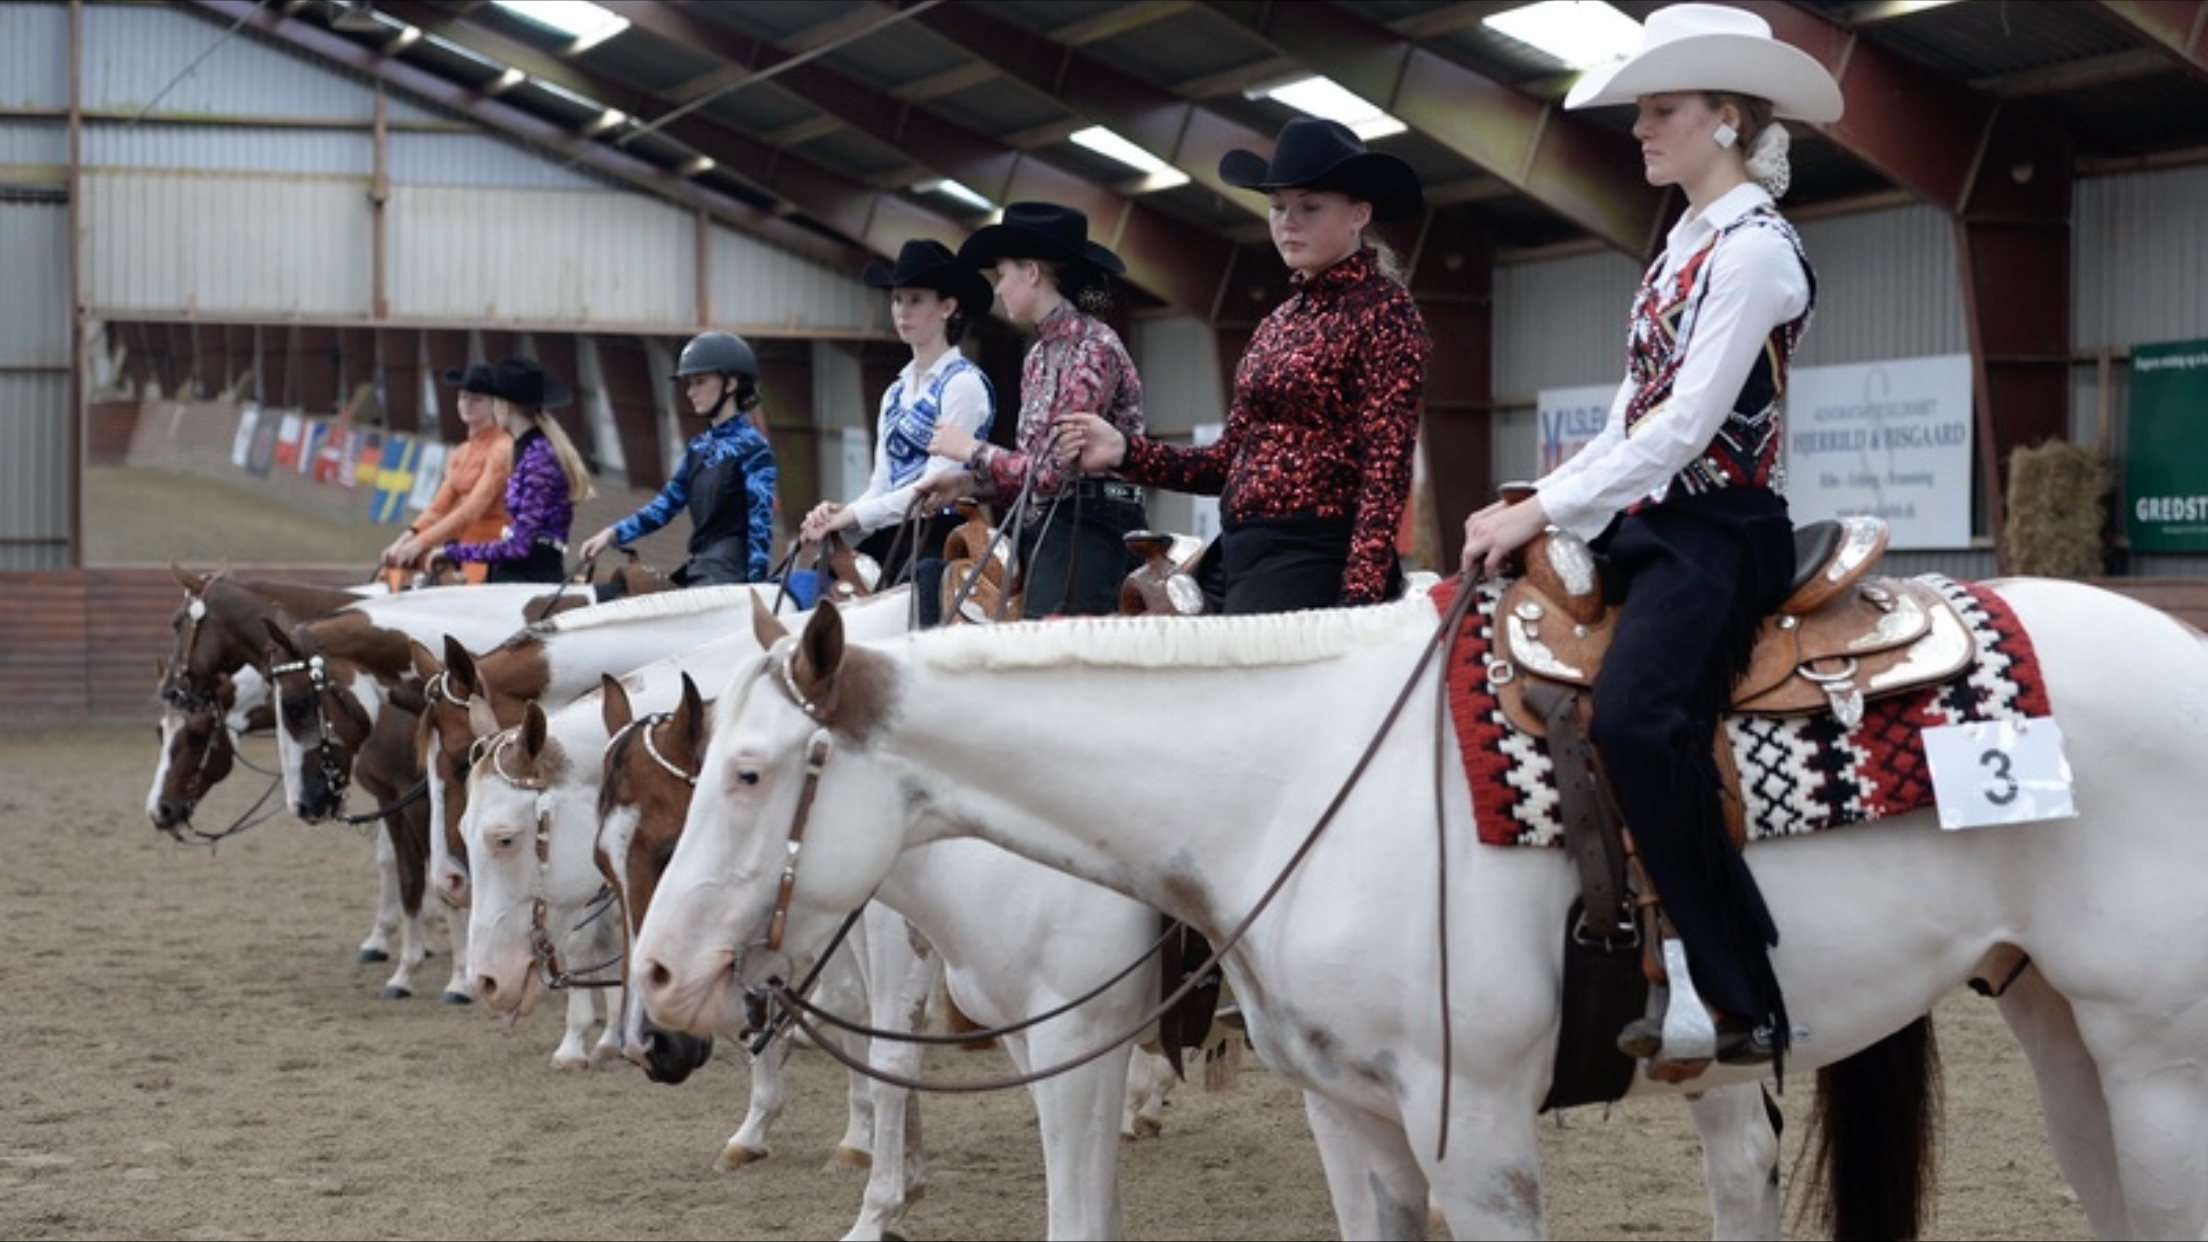 Horse owners need to practice good biosecurity if their animals will come in contact with other horses at events such as horse shows, rodeos and county fairs. (NDSU photo)